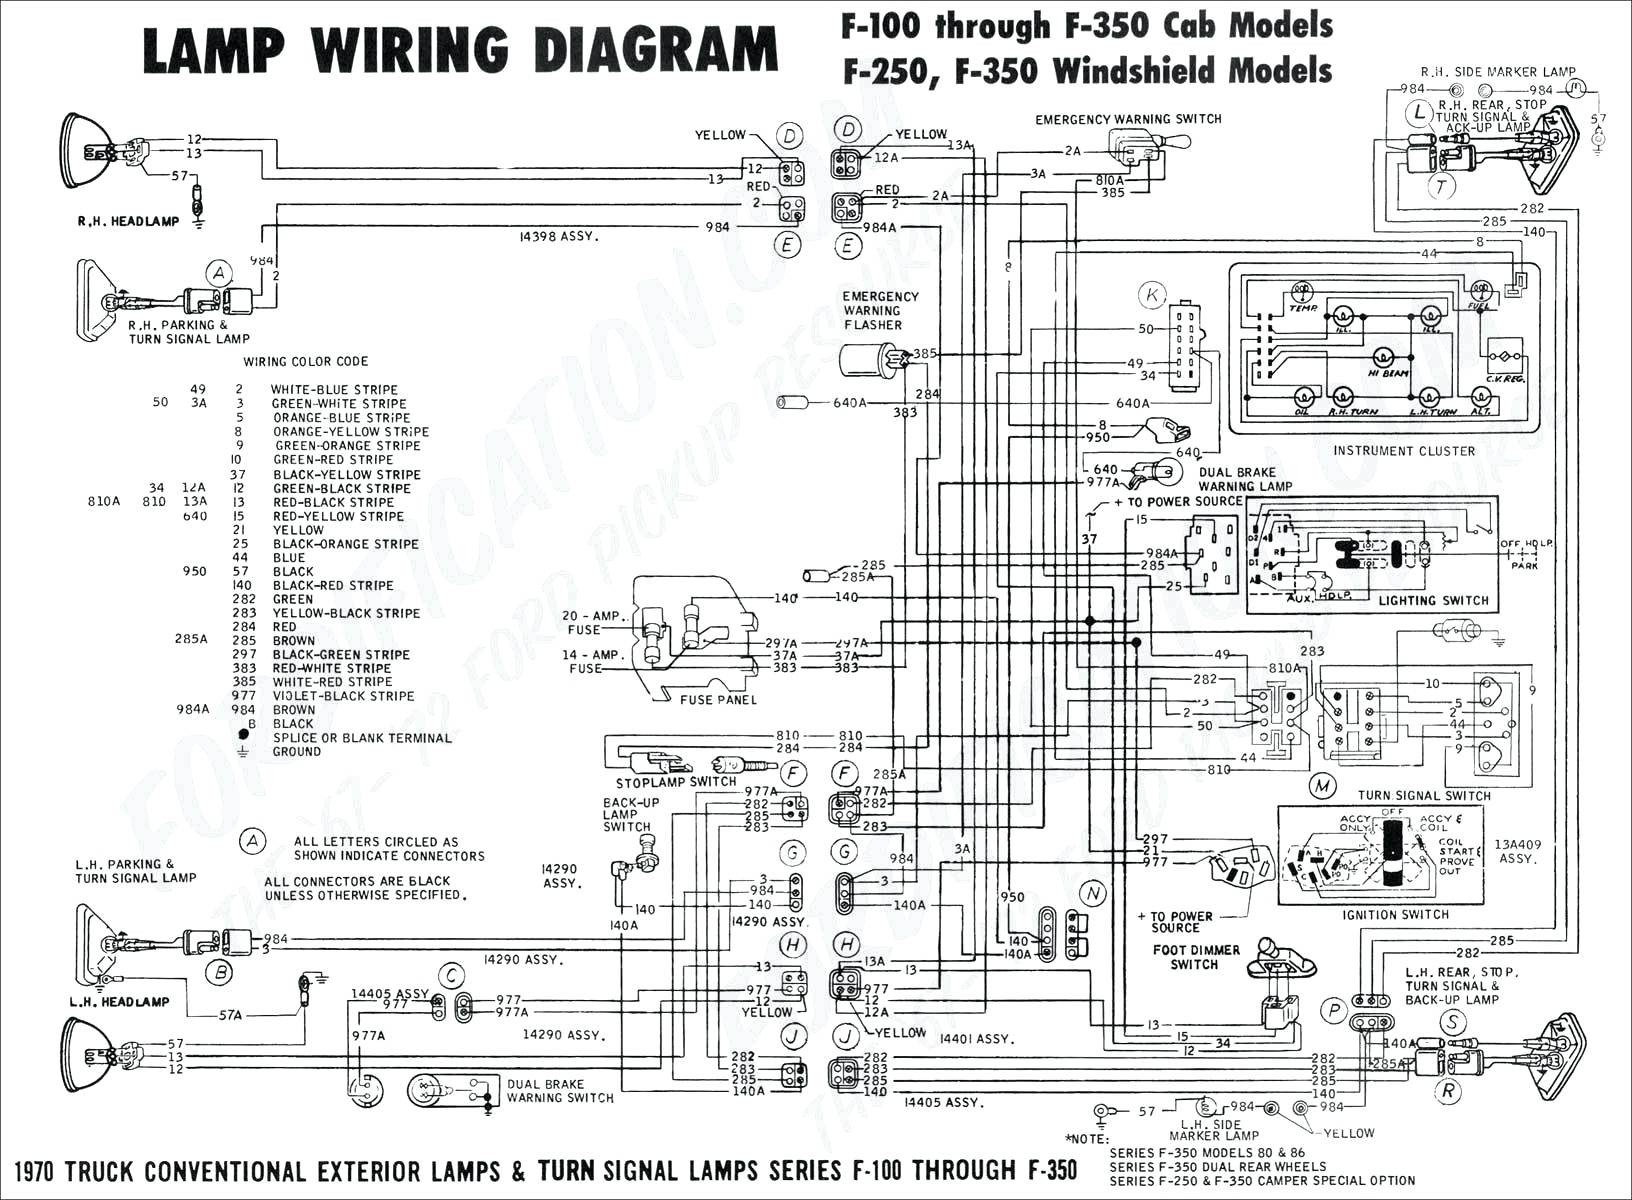 DIAGRAM] 03 Chevy C4500 Wiring Diagram FULL Version HD Quality Wiring  Diagram - WATERDIAGRAM.SILVI-TRIMMINGS.ITSilvi-trimmings.it